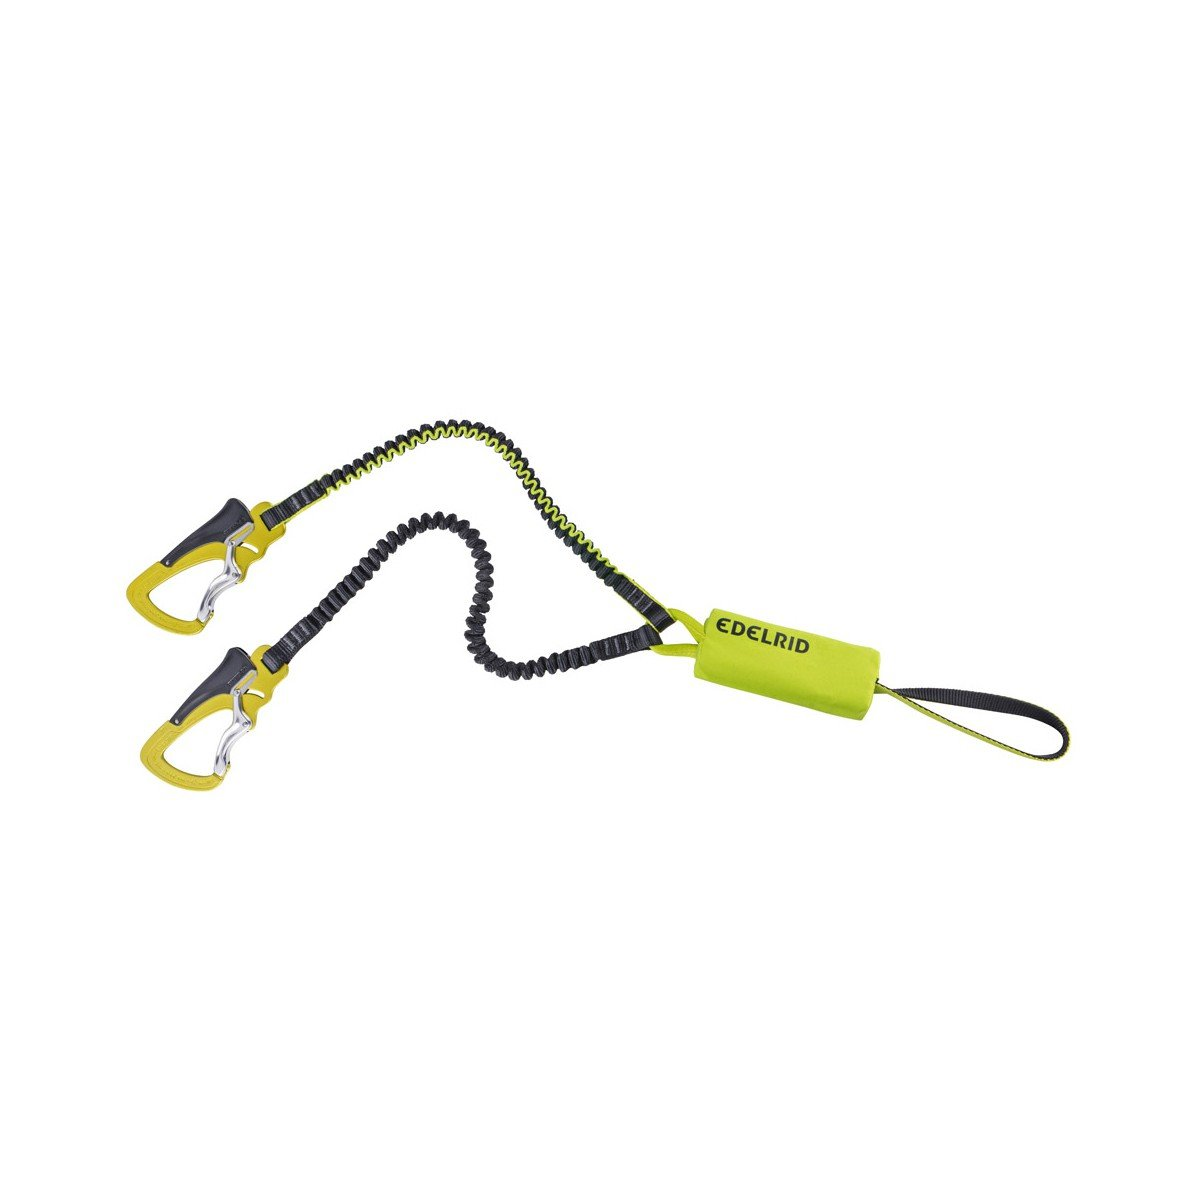 Cable Kit 5.0 edelrid